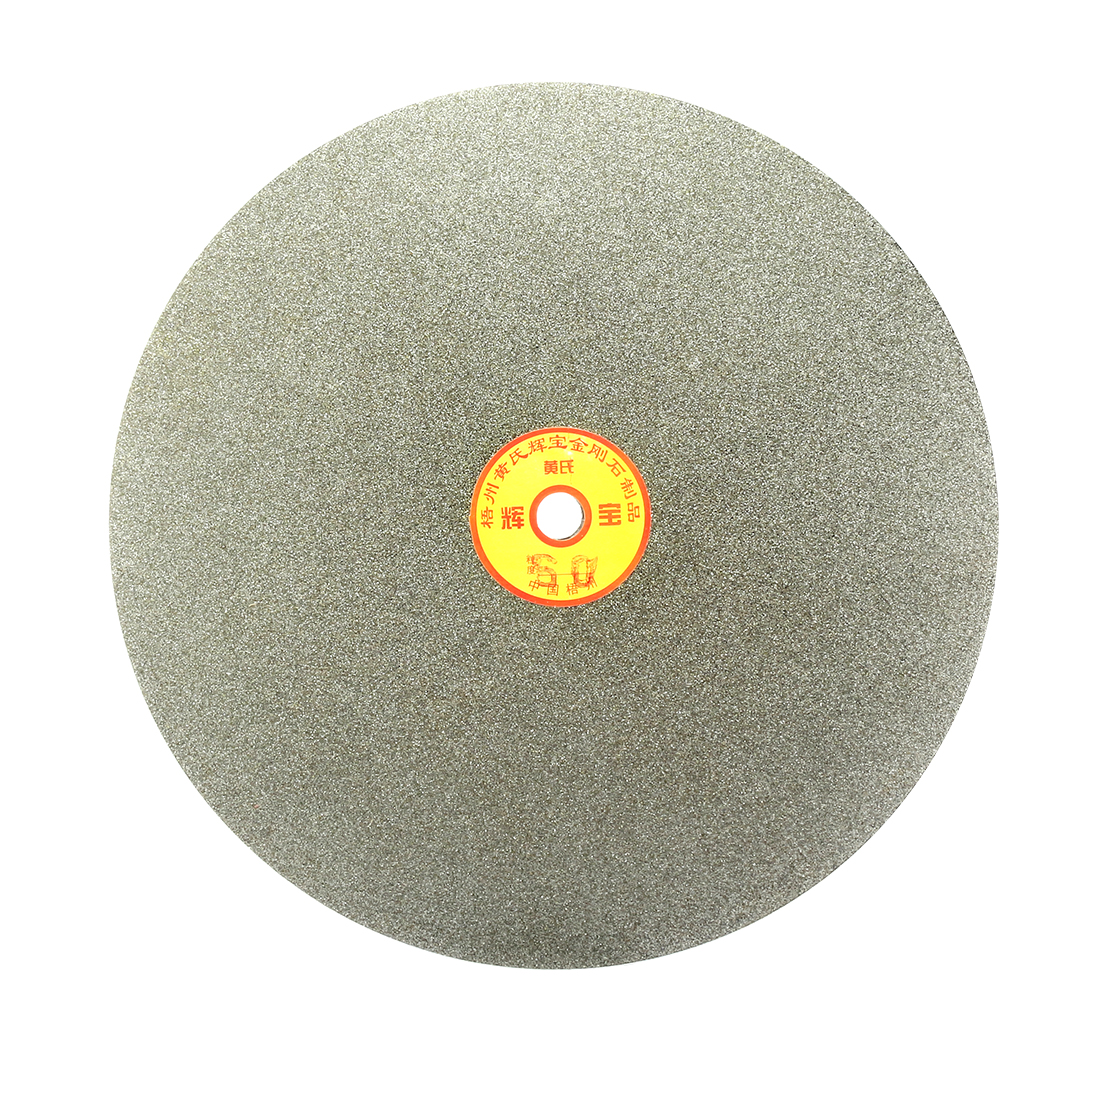 250mm 10-inch Grit 60 Diamond Coated Flat Lap Disk Wheel Grinding Sanding Disc